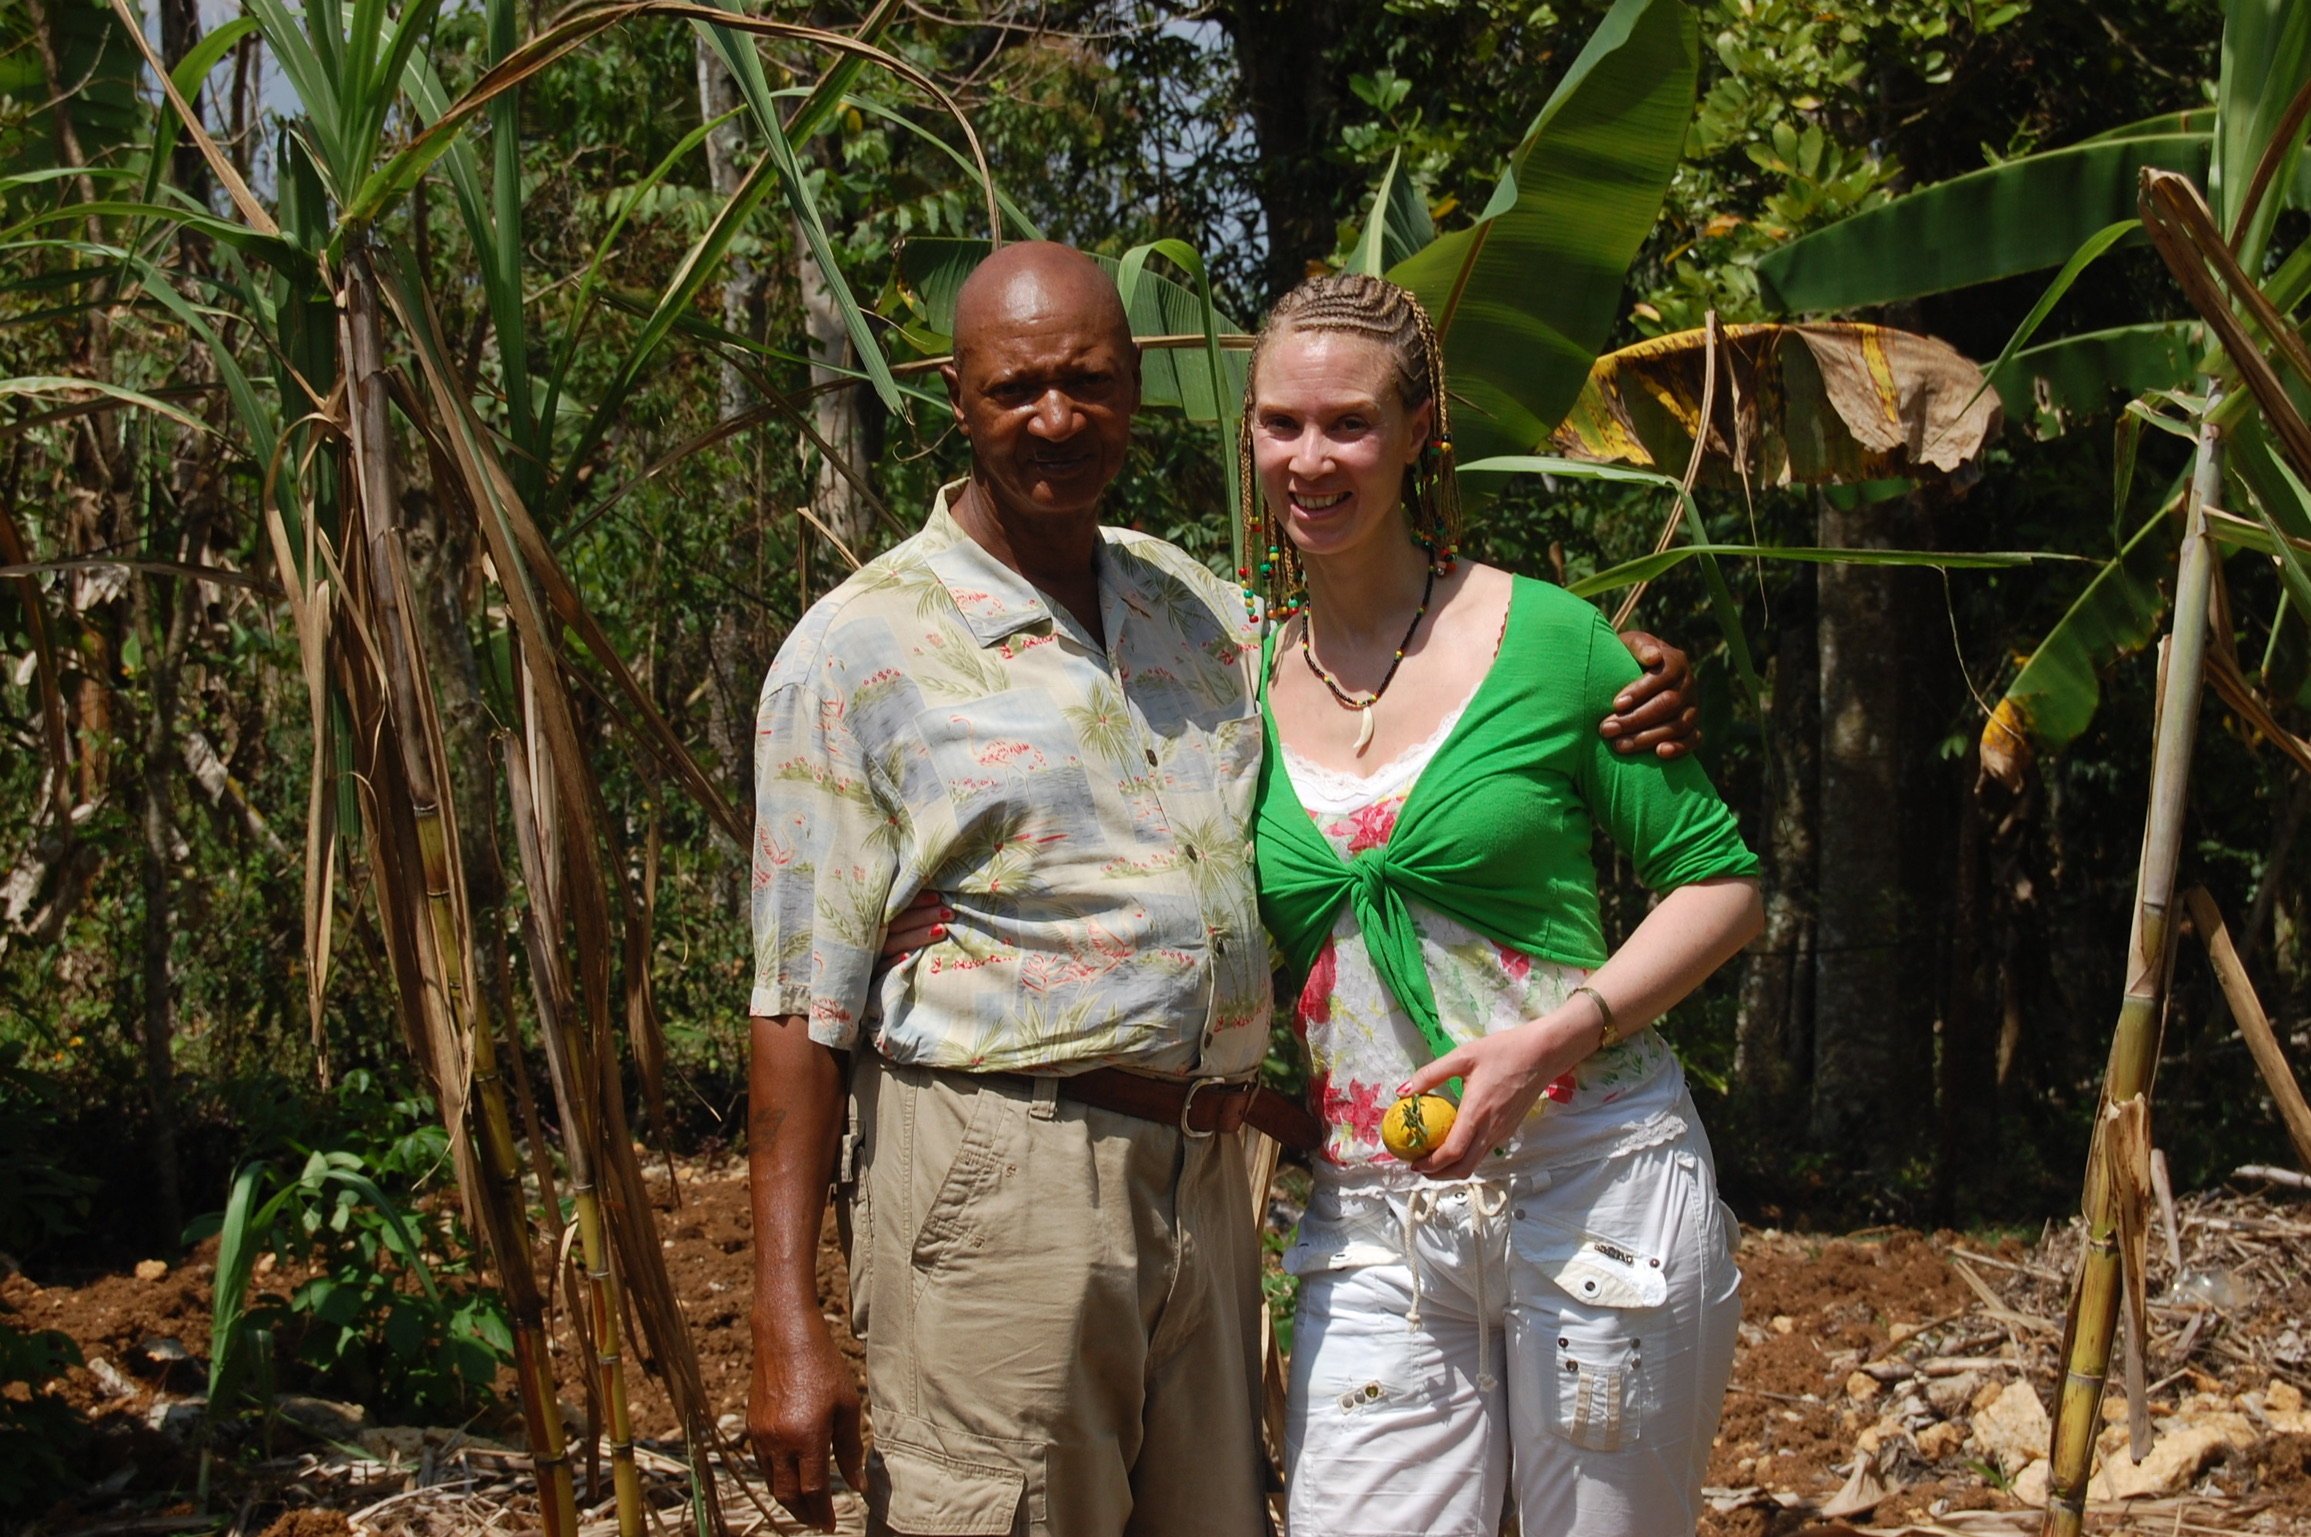 Tracing my roots to herbalists in my family in Jamaica